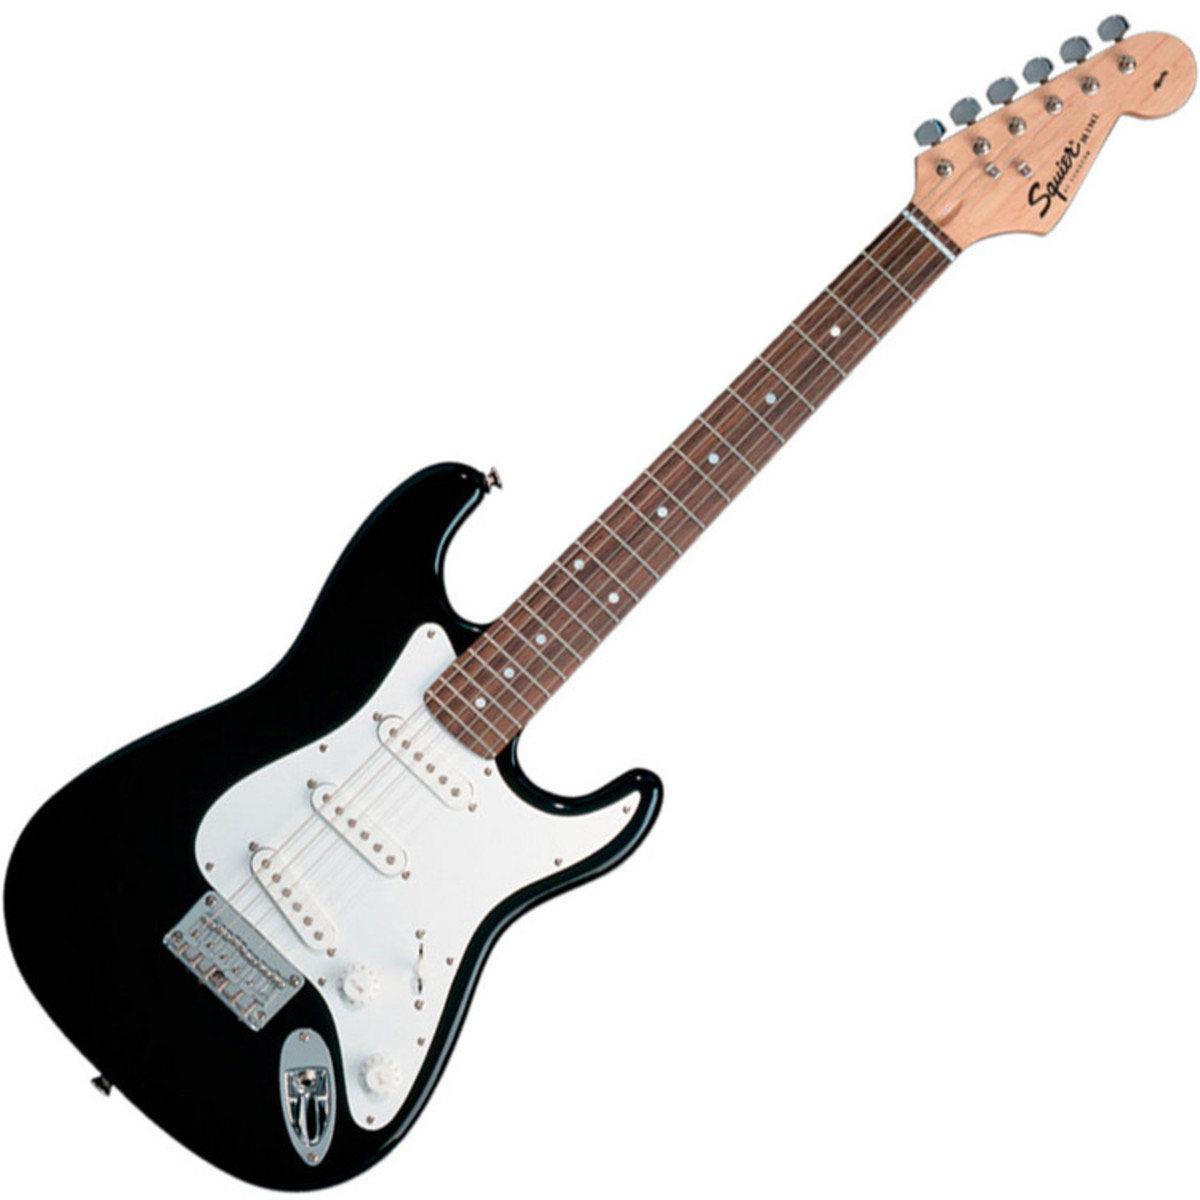 squier by fender mini strat 3 4 size electric guitar black ex demo at gear4music. Black Bedroom Furniture Sets. Home Design Ideas